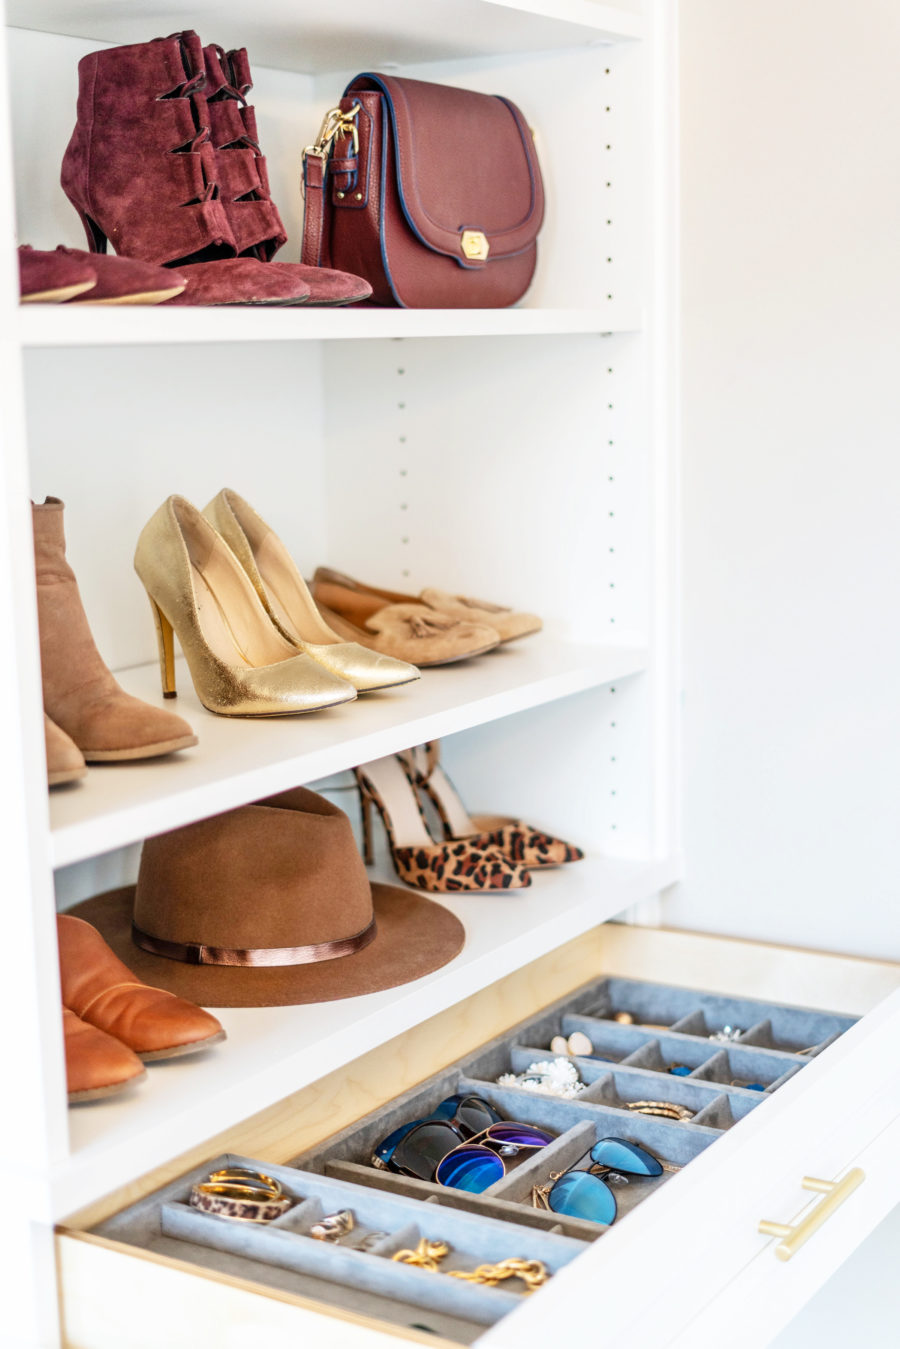 Shoe earring and bag organization